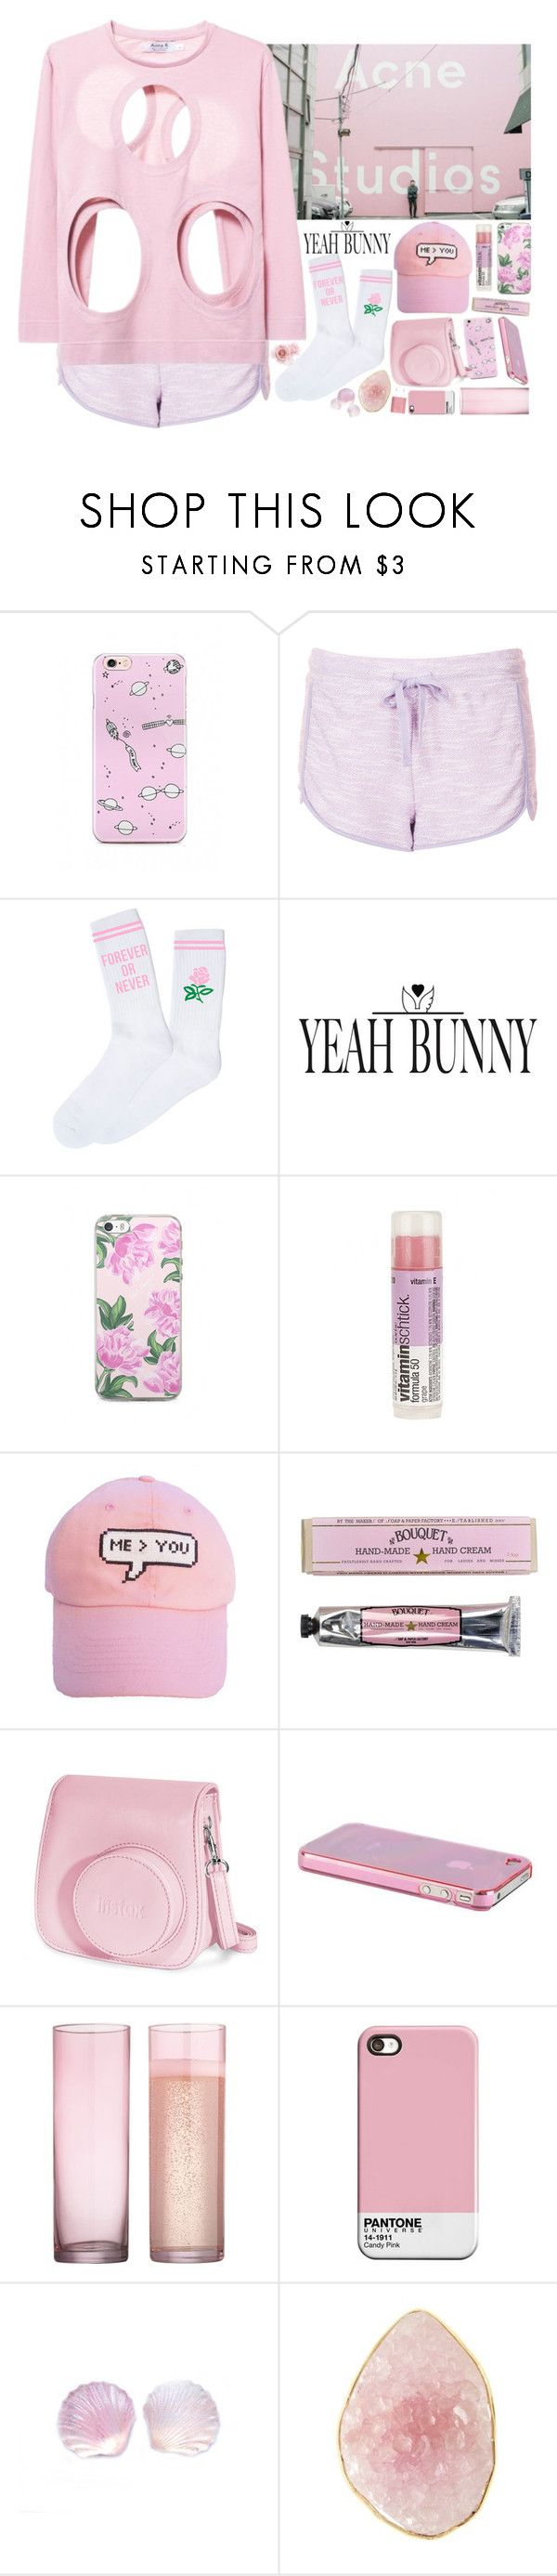 """""""Pink"""" by ritaflagy ❤ liked on Polyvore featuring Topshop, Yeah Bunny, me you, Soap & Paper Factory, Fujifilm, CB2 and PhunkeeTree"""